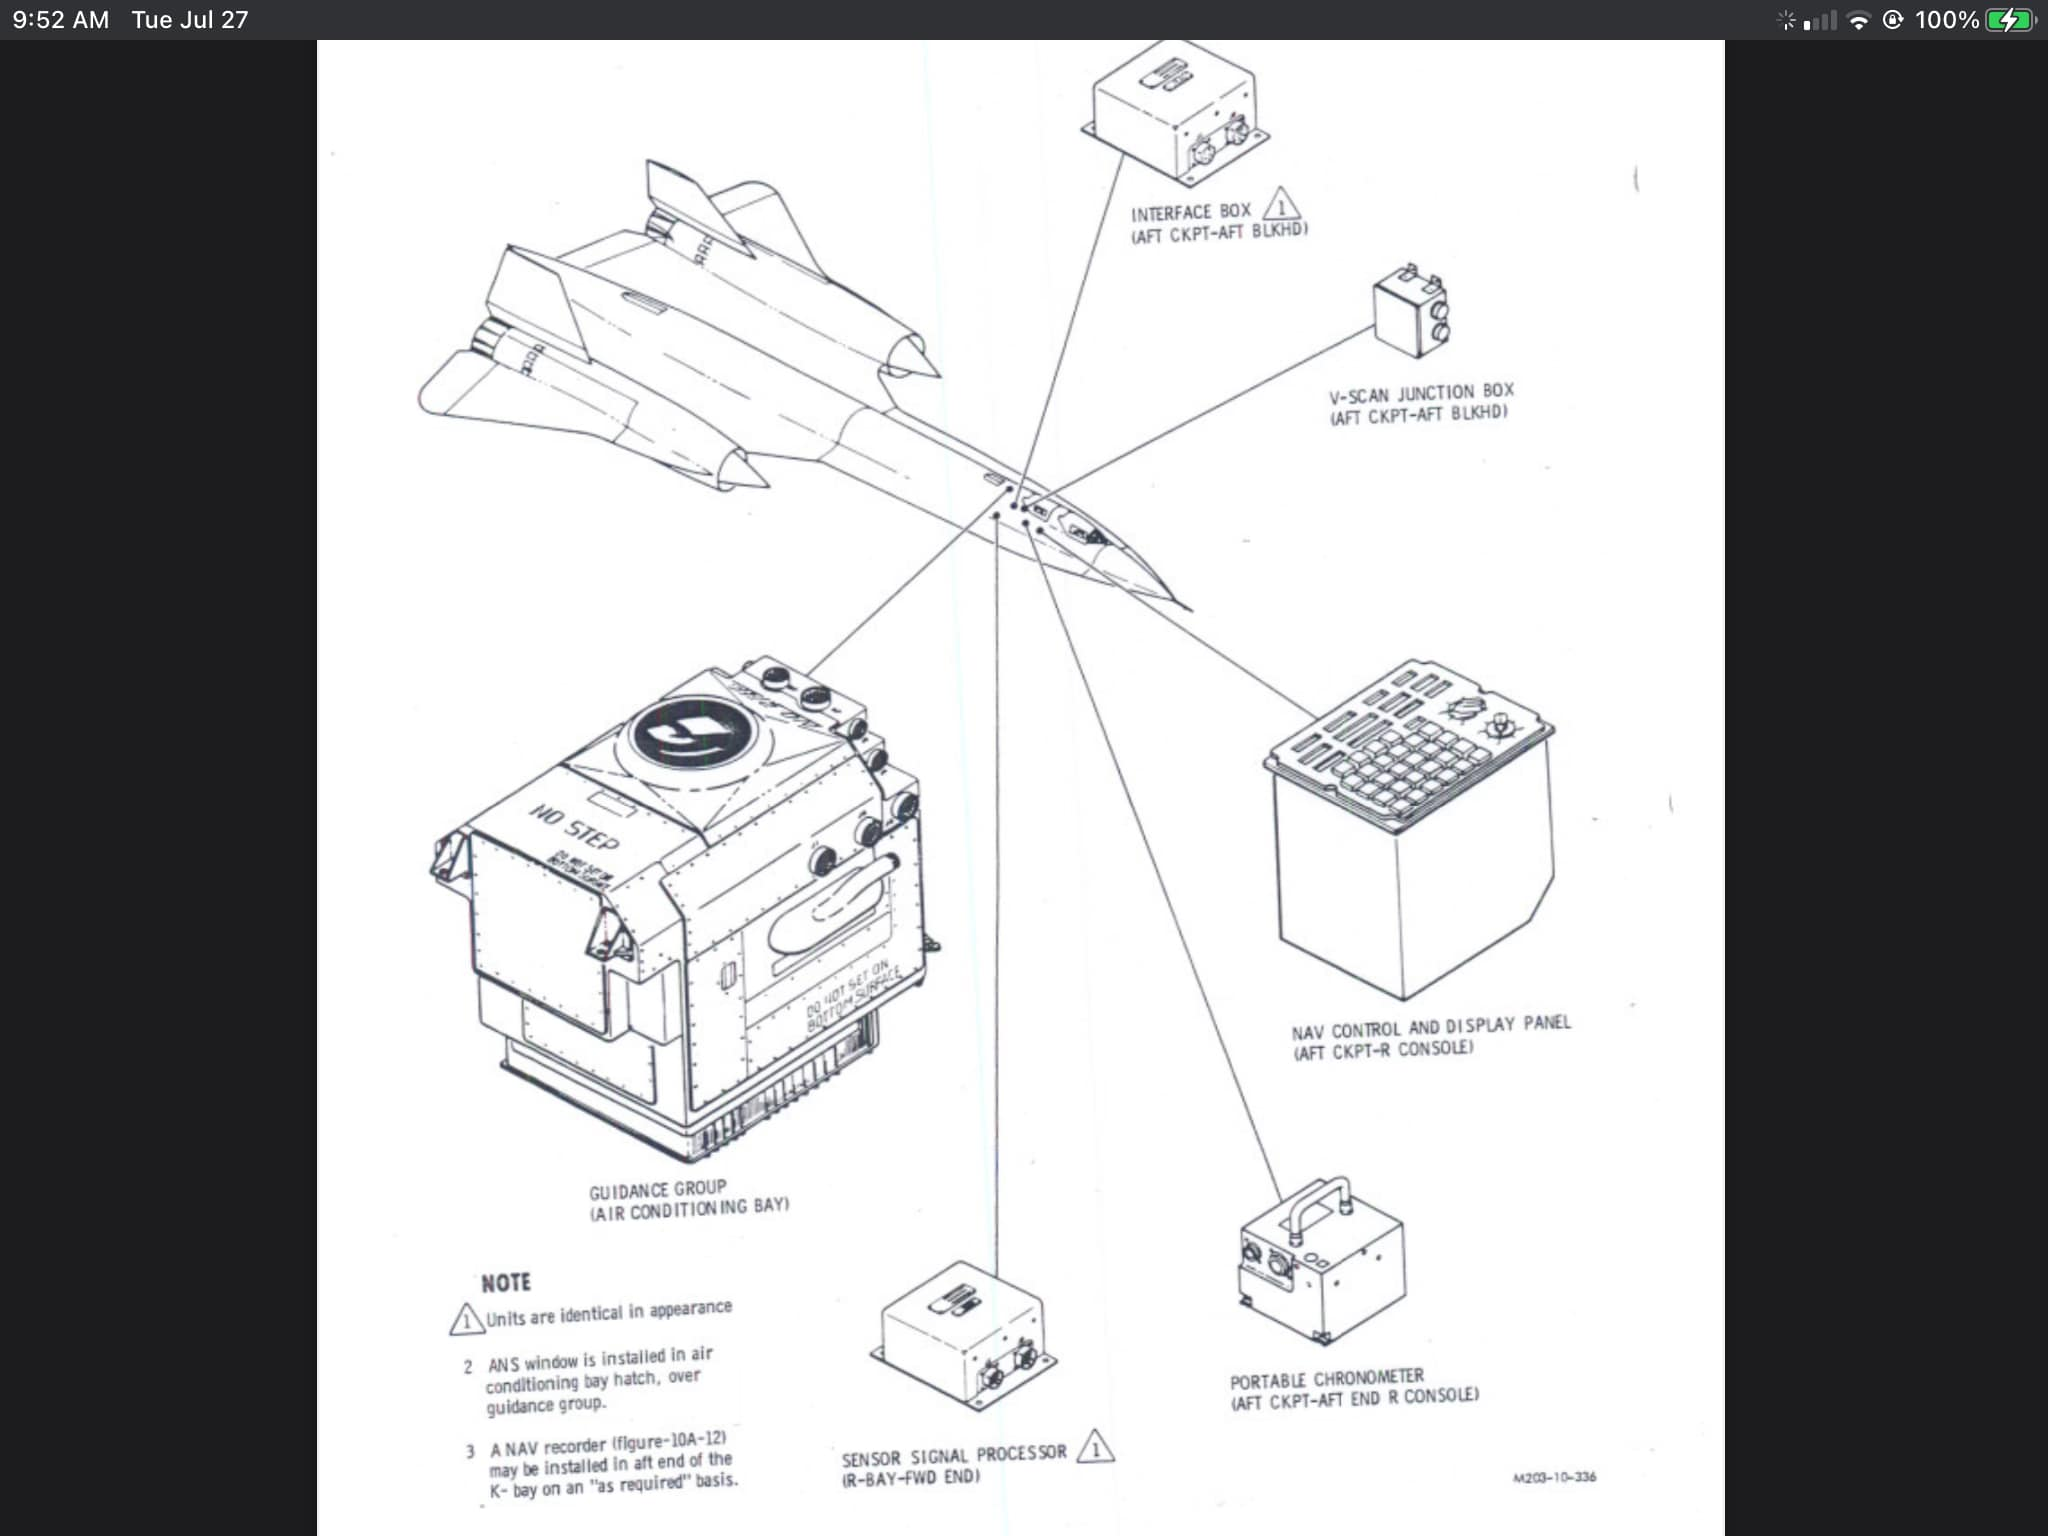 The SR-71 Astroinertial Navigation System, aka R2-D2, was crucial in Blackbird mission. Here's why.